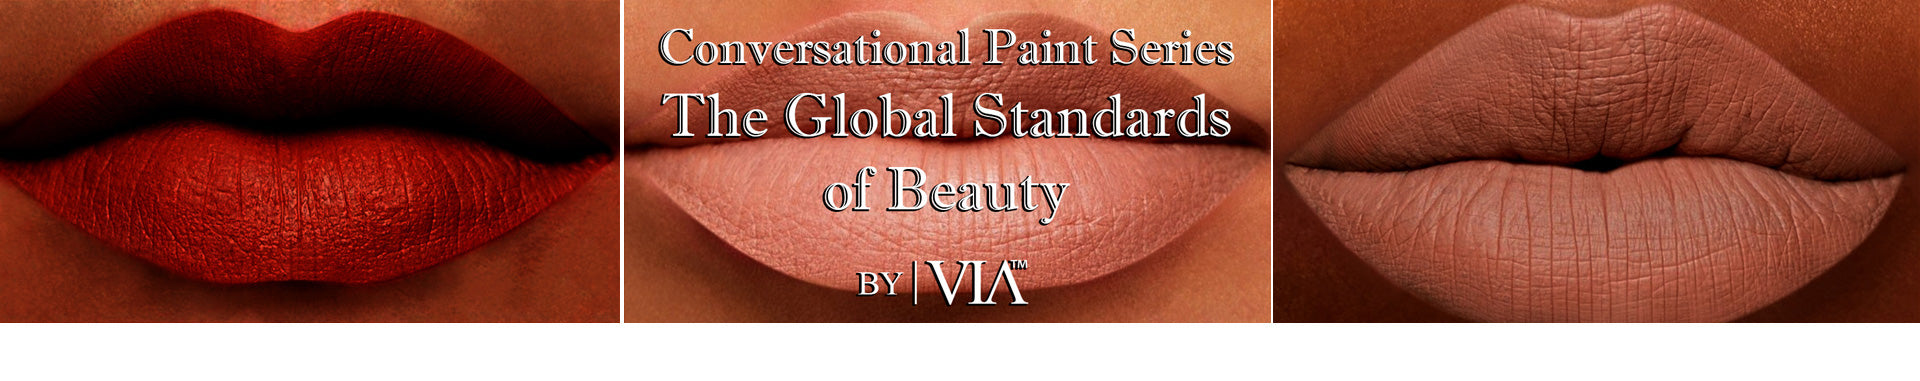 VIA presents from her Conversation Series: The Global Standards of Beauty